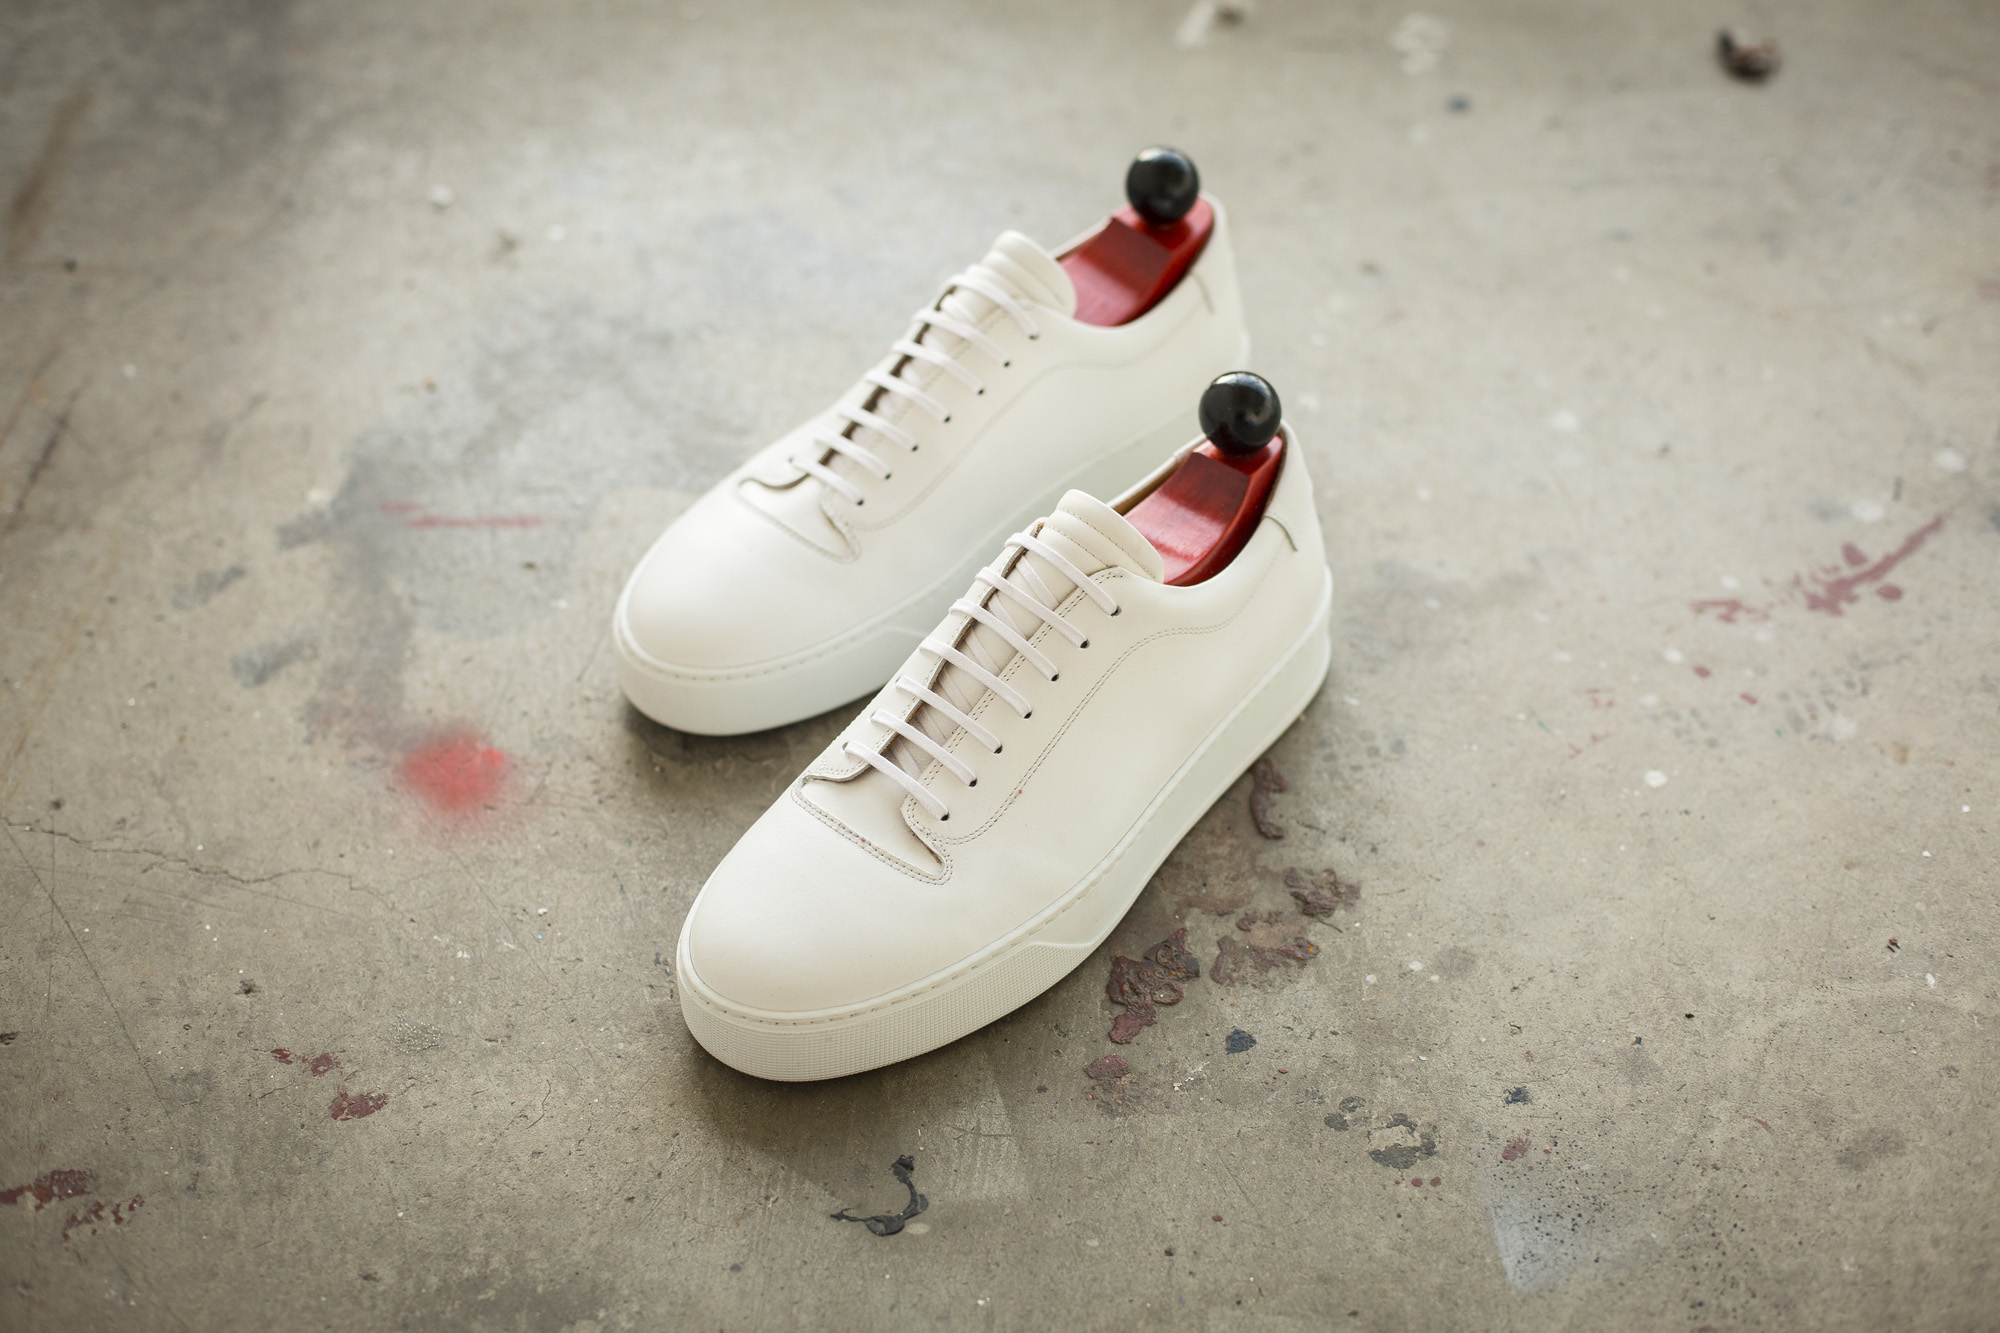 J.FitzPatrick Sneakers Round 1 - Now Available!